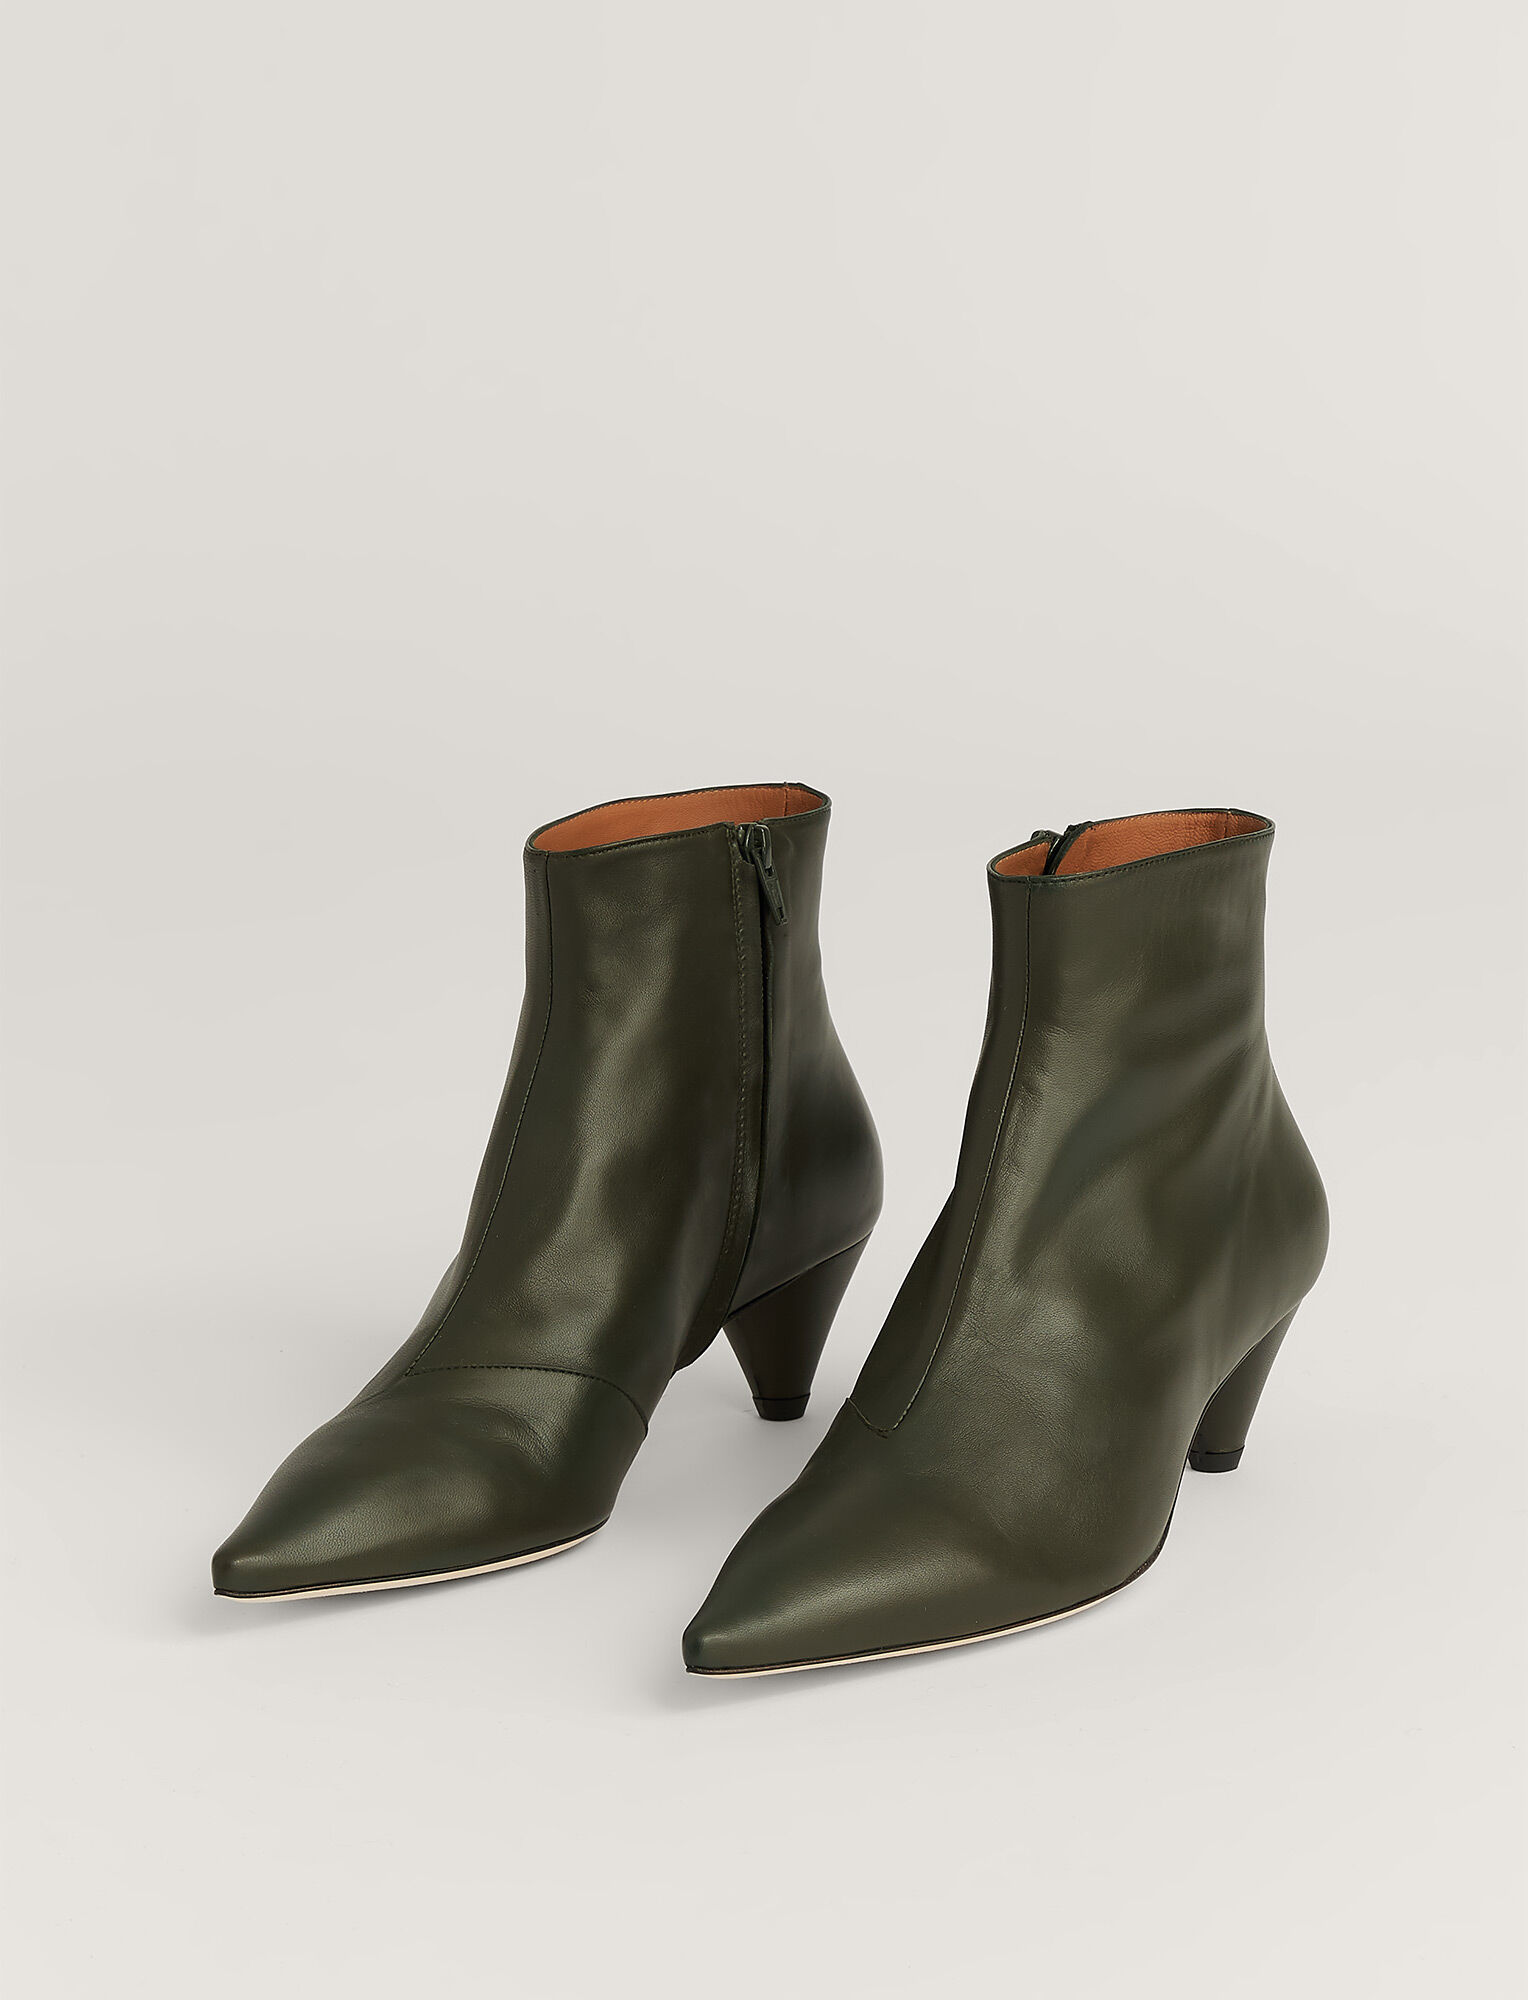 Joseph, Bottines Hanae en cuir, in MILITARY